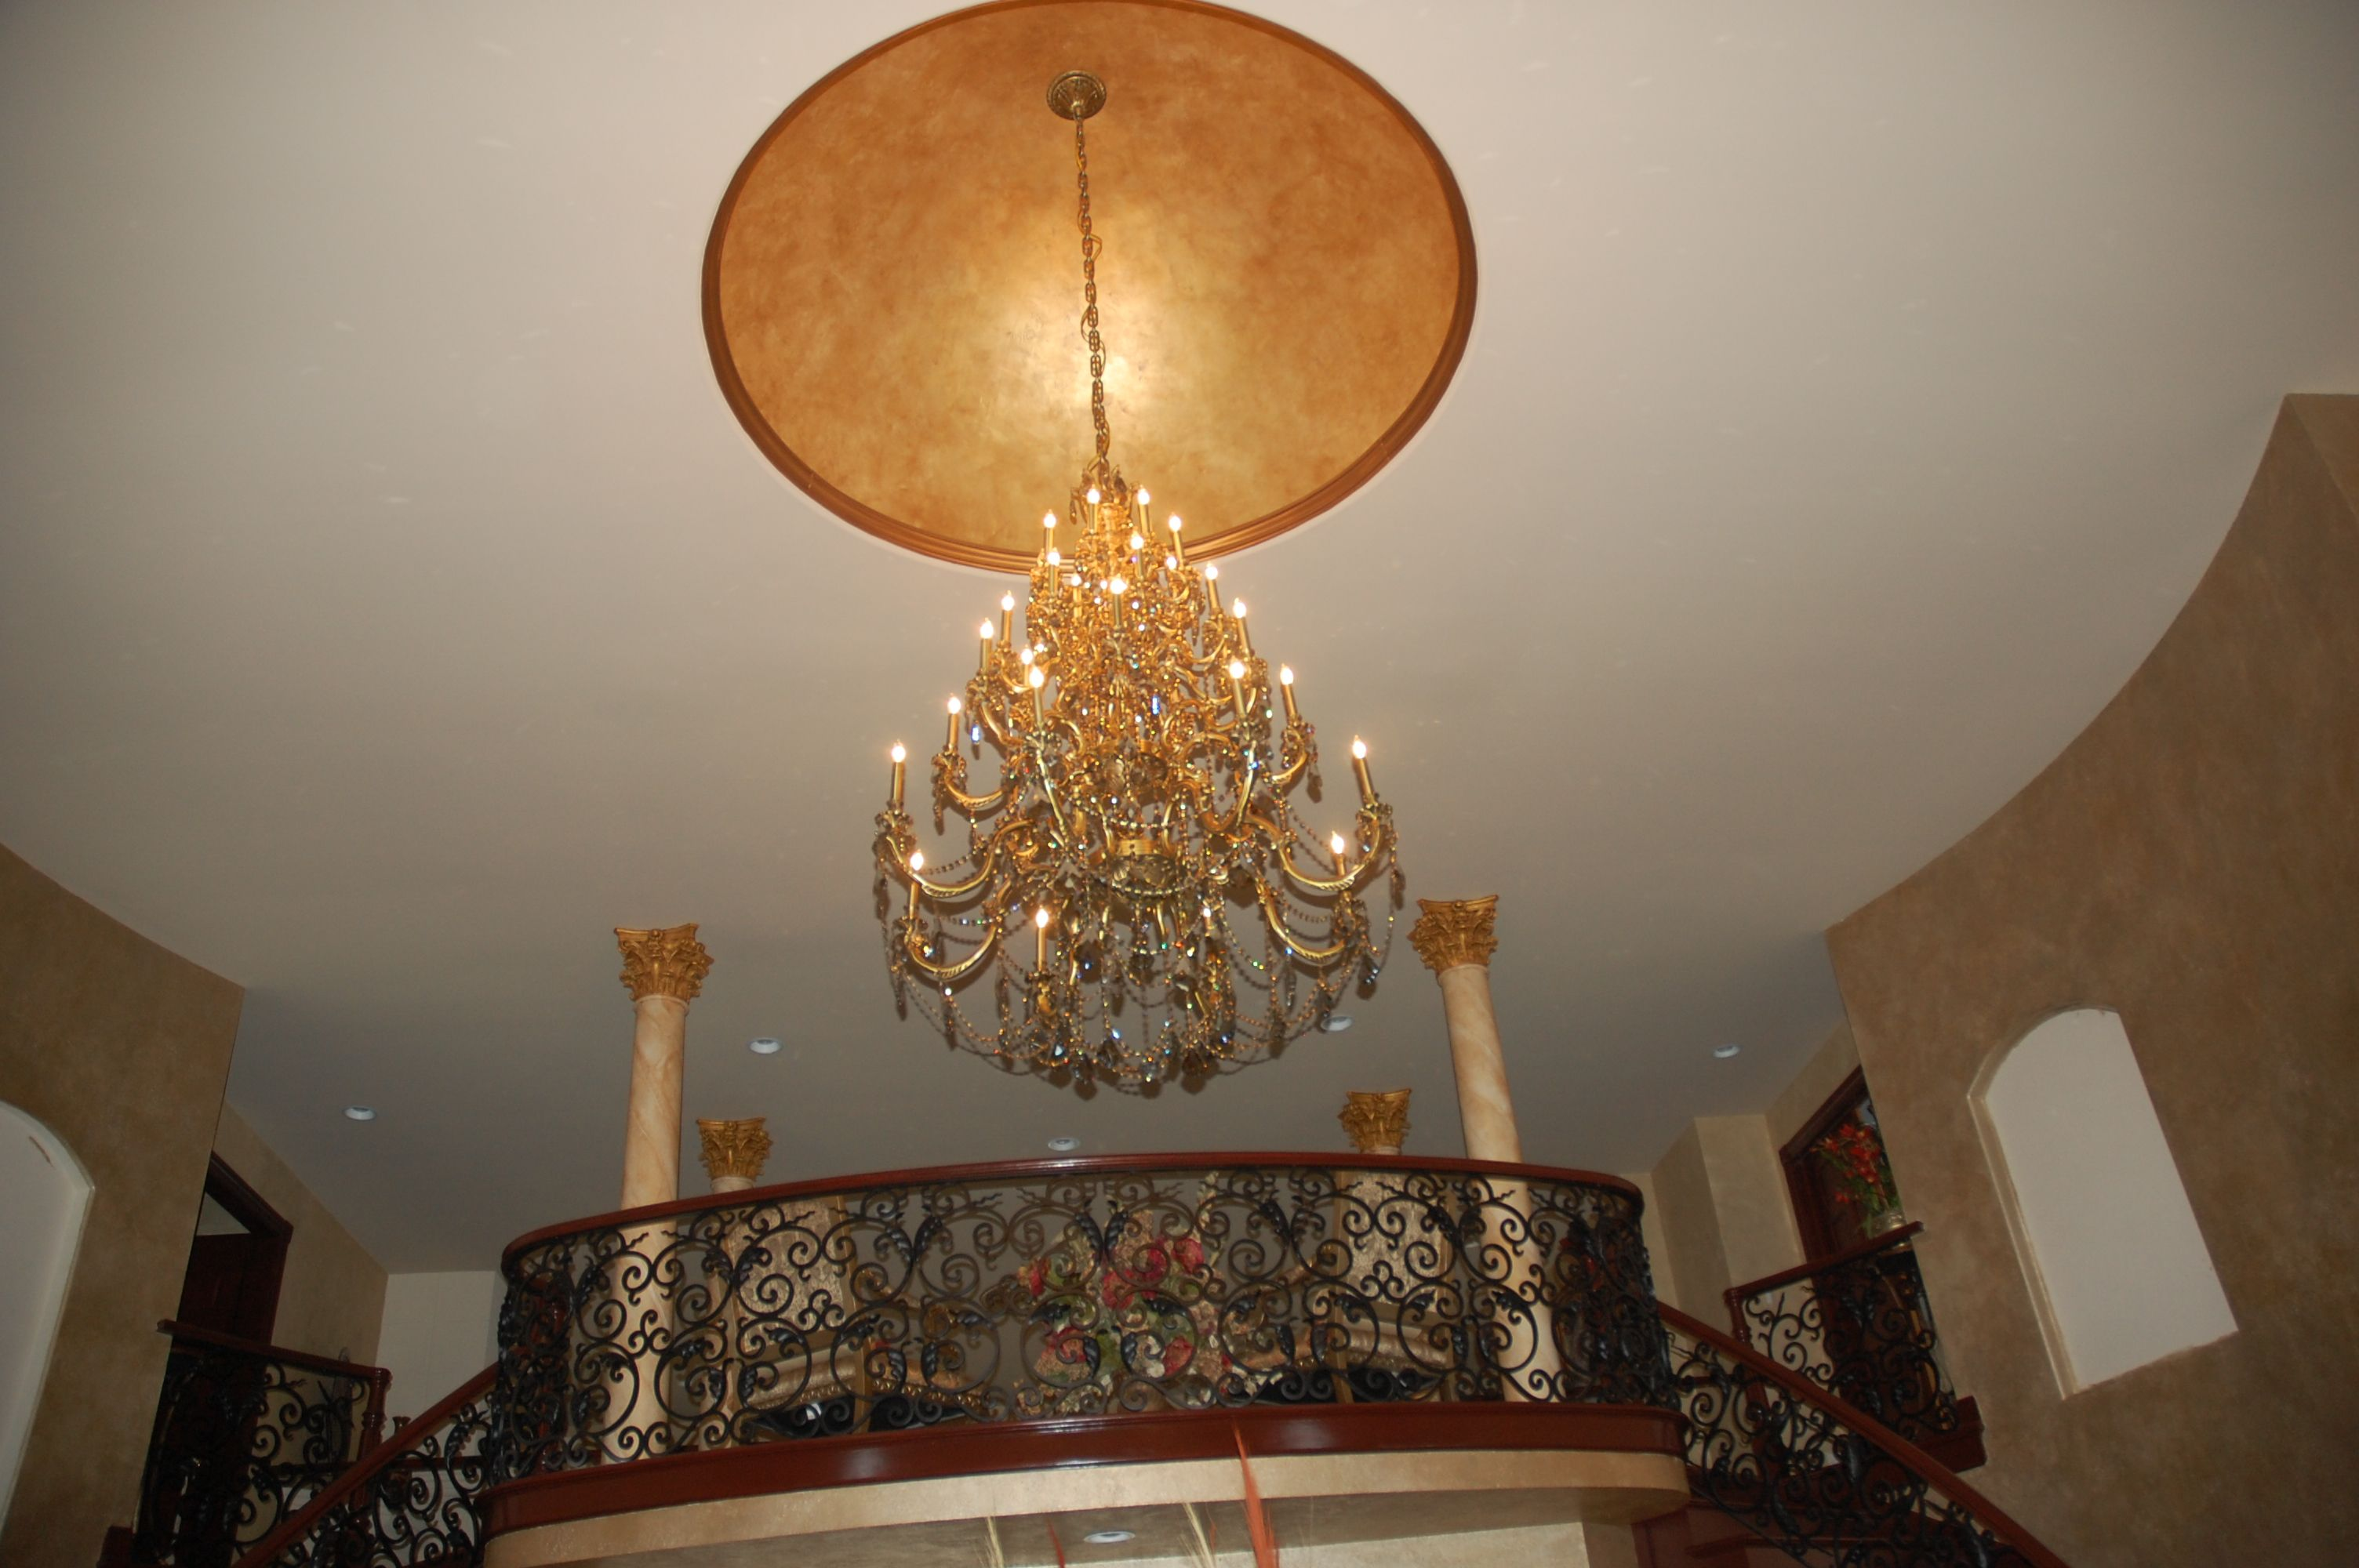 Dome Ceiling Faux Painted With Indirect Lighting In The Cove